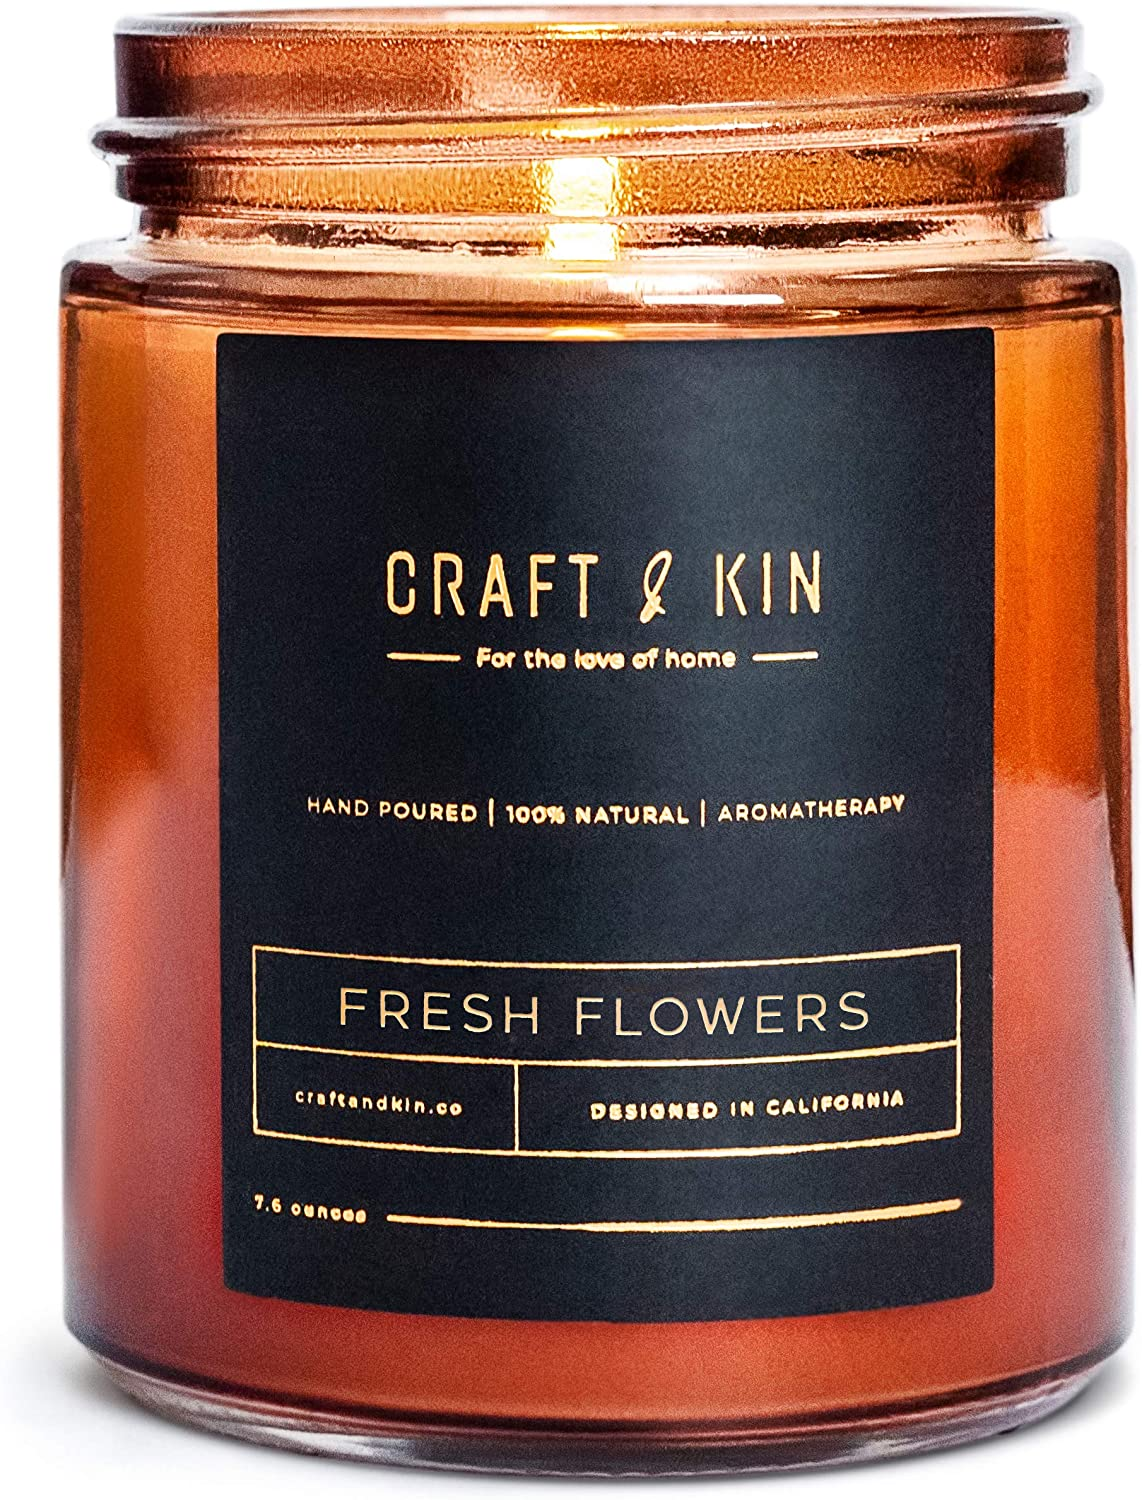 Craft & Kin Fresh Flower Scent Soy Candle